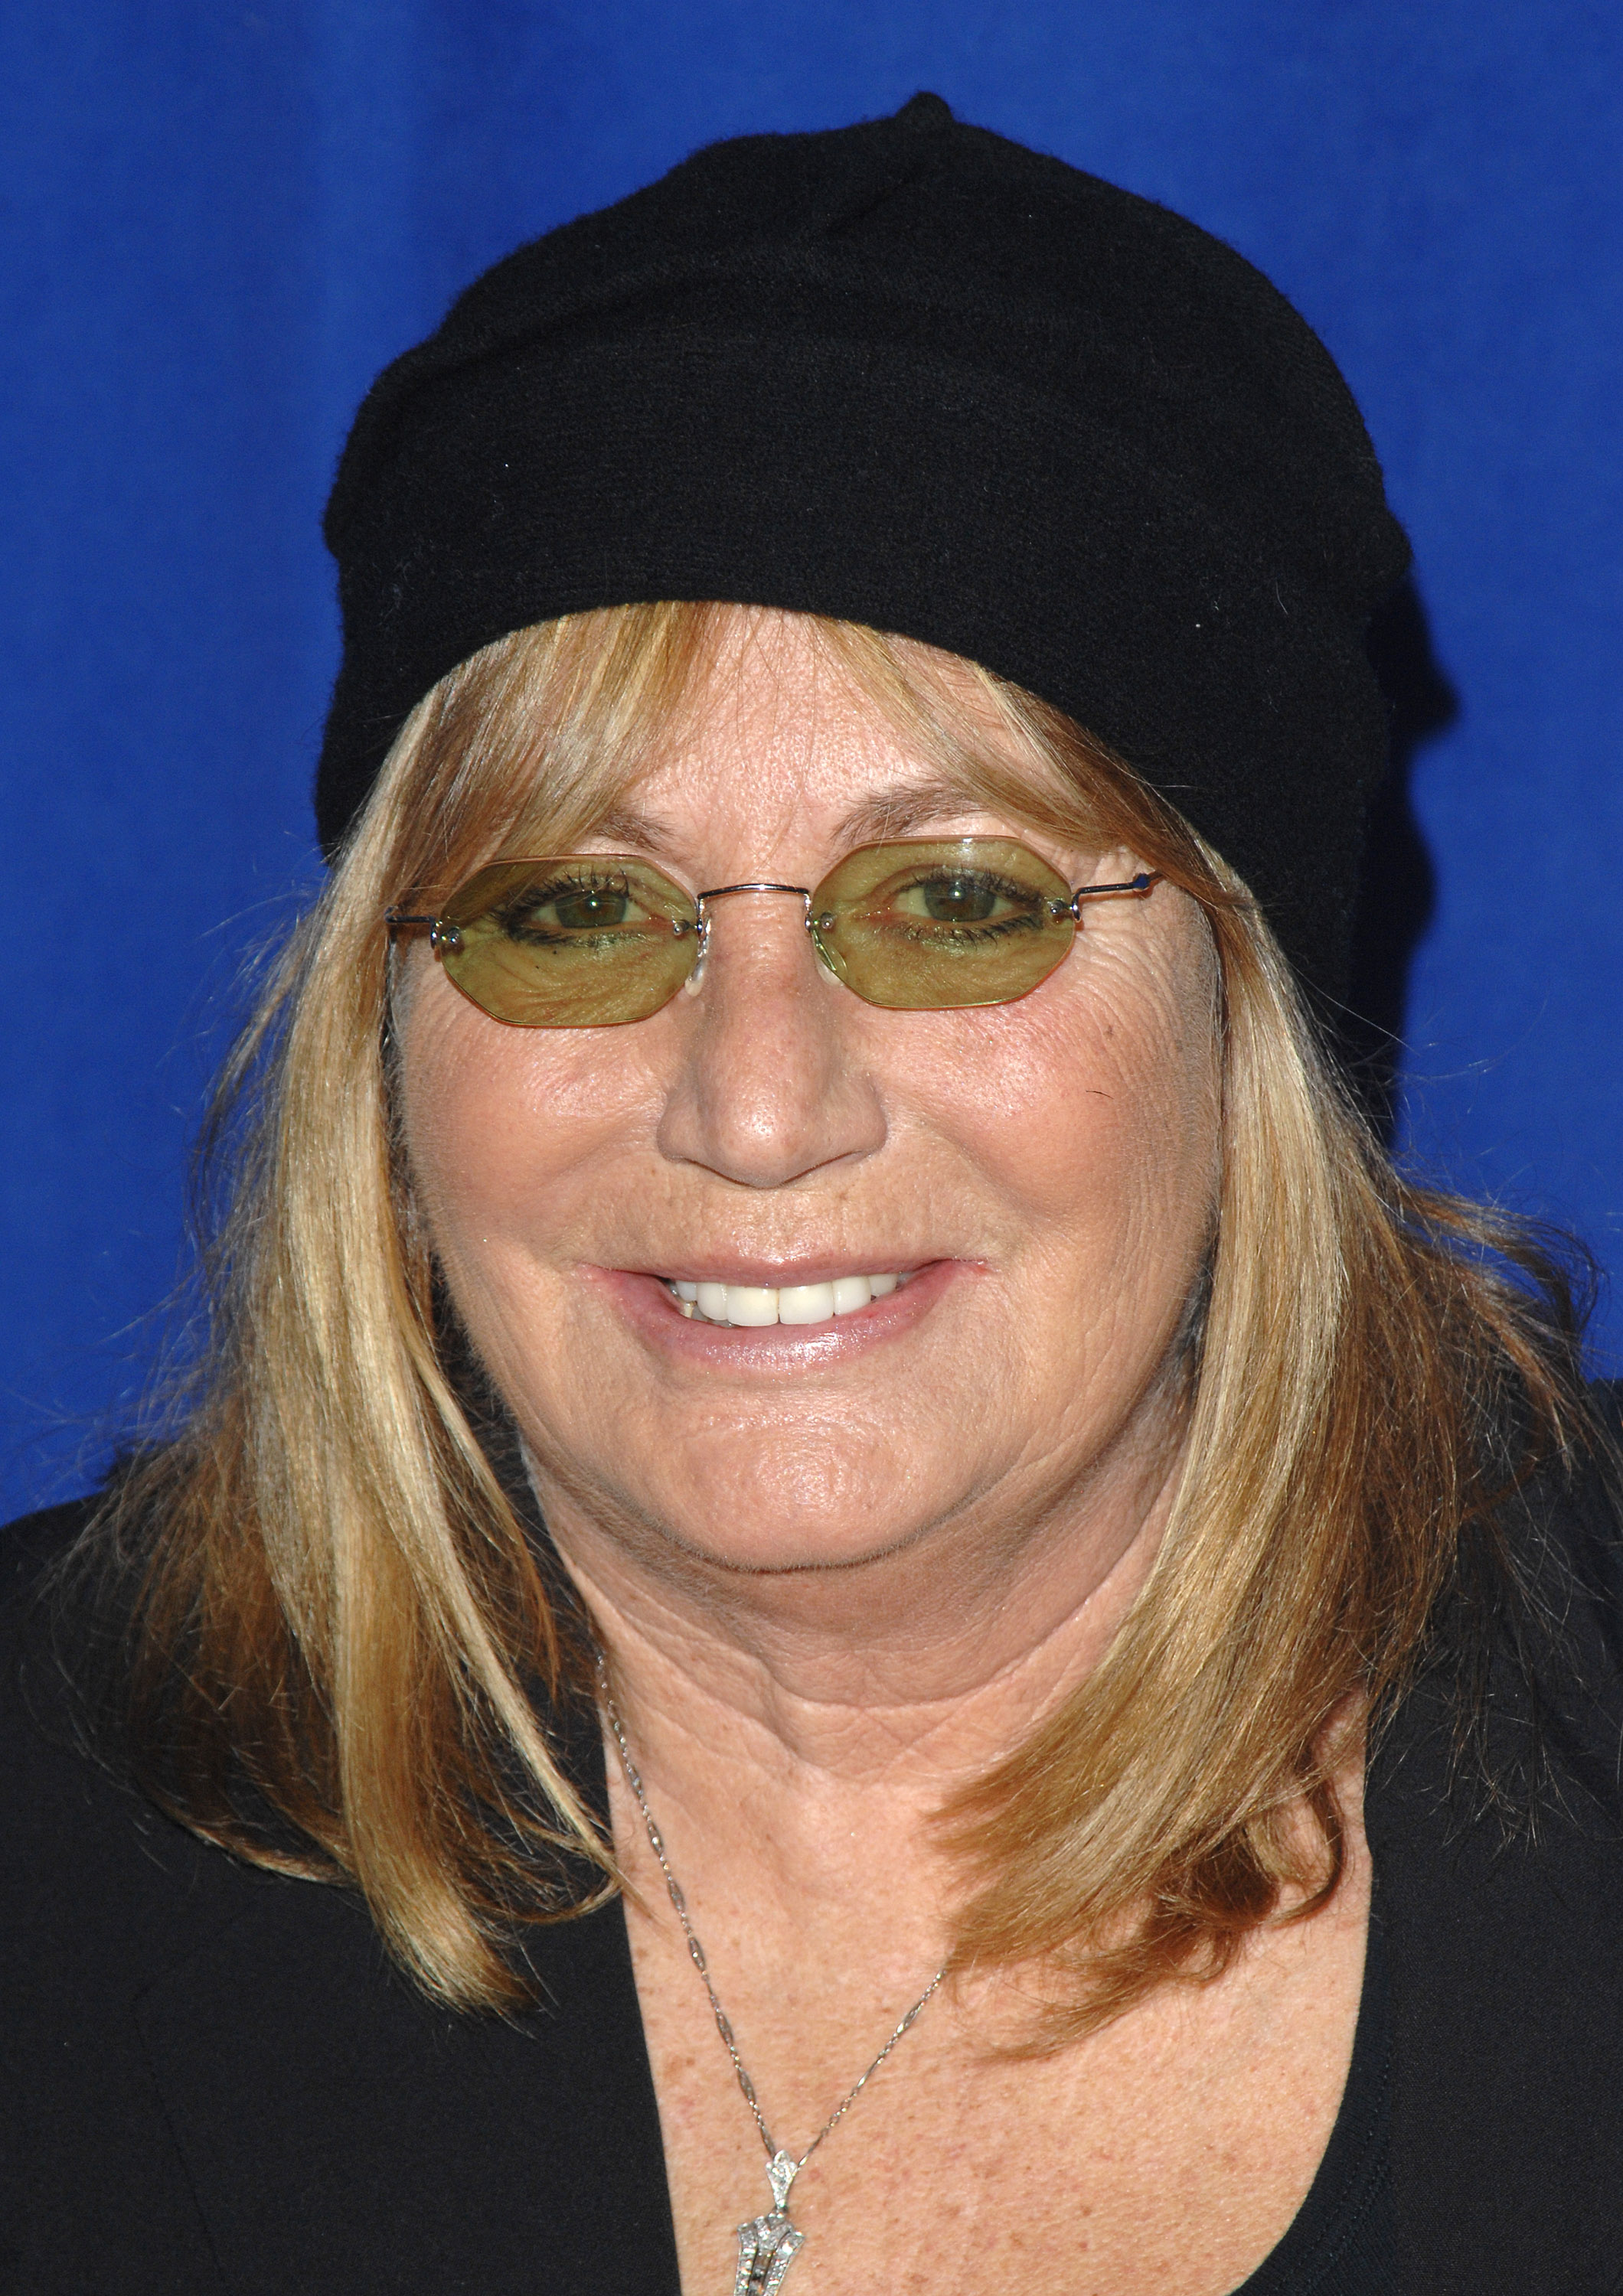 <div class='meta'><div class='origin-logo' data-origin='AP'></div><span class='caption-text' data-credit='Evan Agostini/Invision/AP'>Penny Marshall, a director known for films like ''Big'' and ''A League of Their Own,'' died on Dec. 17, 2018. She was 75.</span></div>